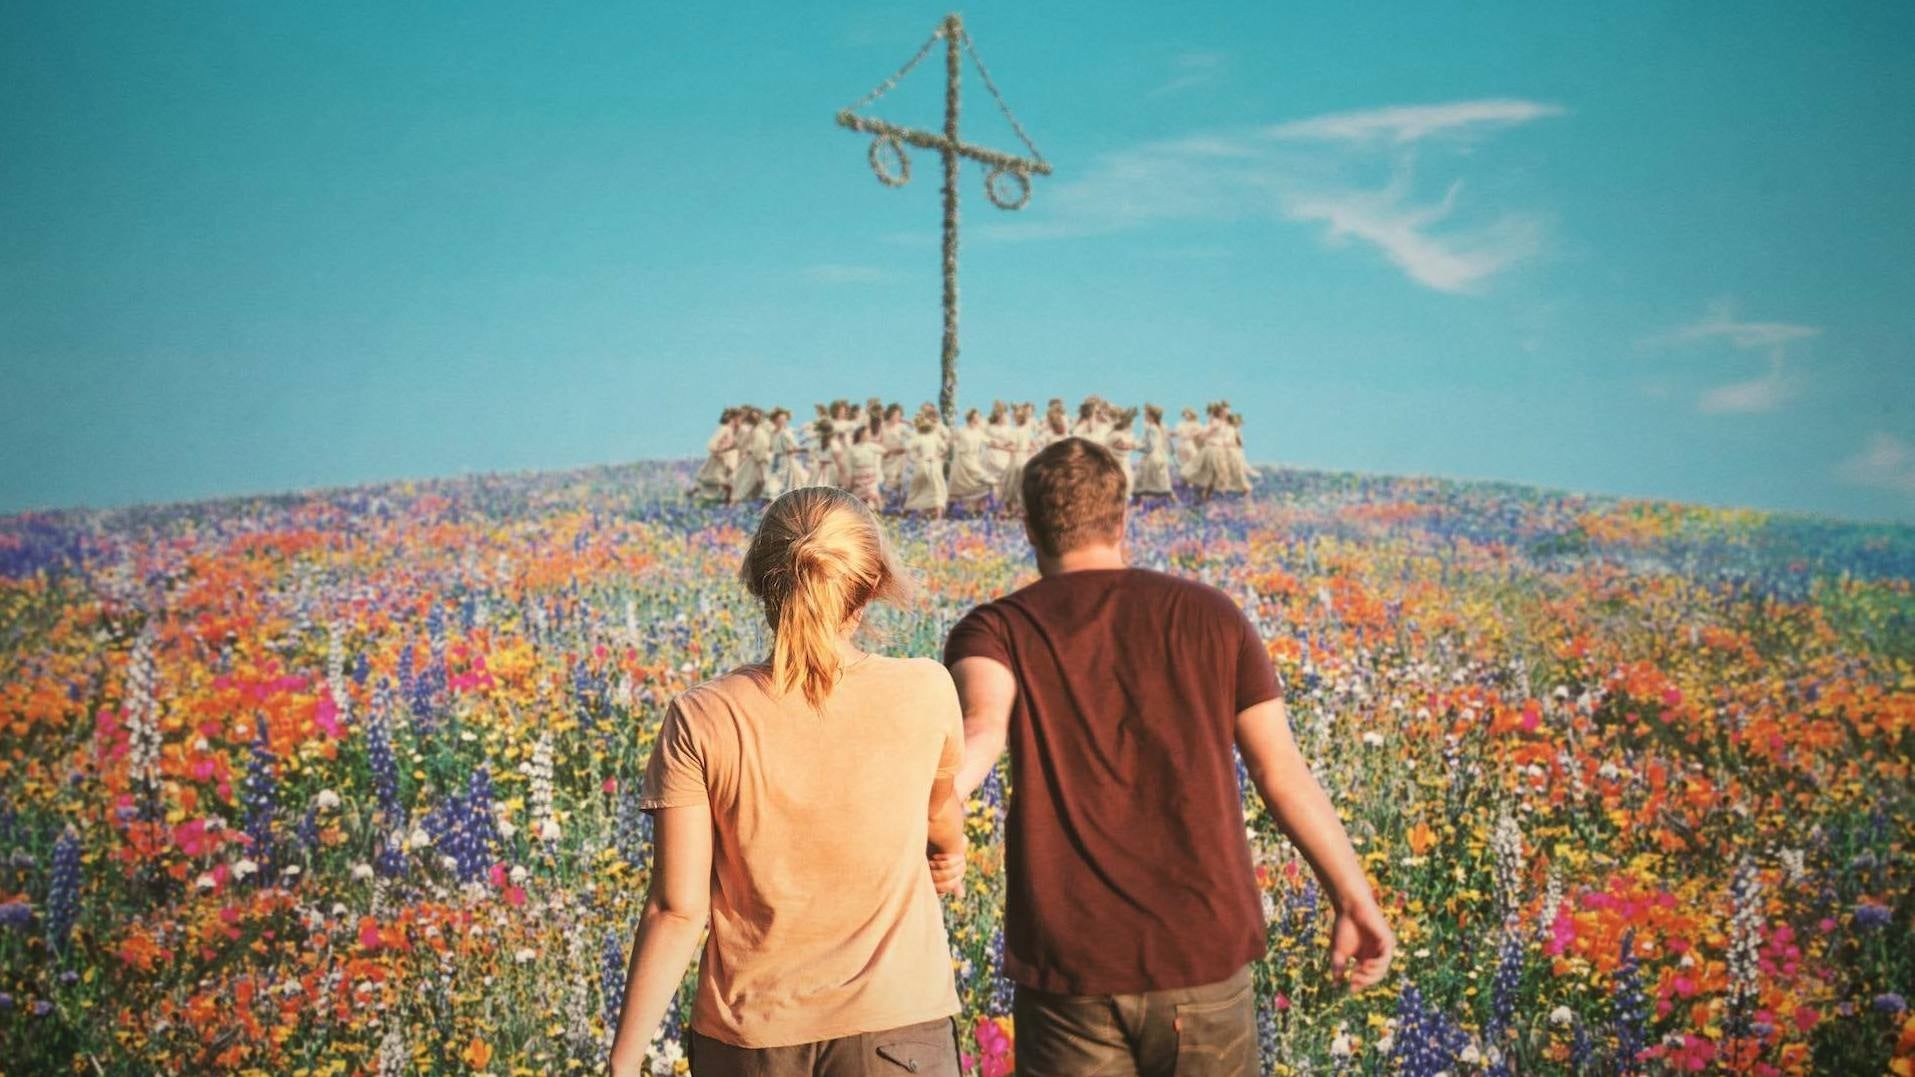 Jordan Peele Says Midsommar's Idyllic Beauty 'Transcends The Horror Of Itself'